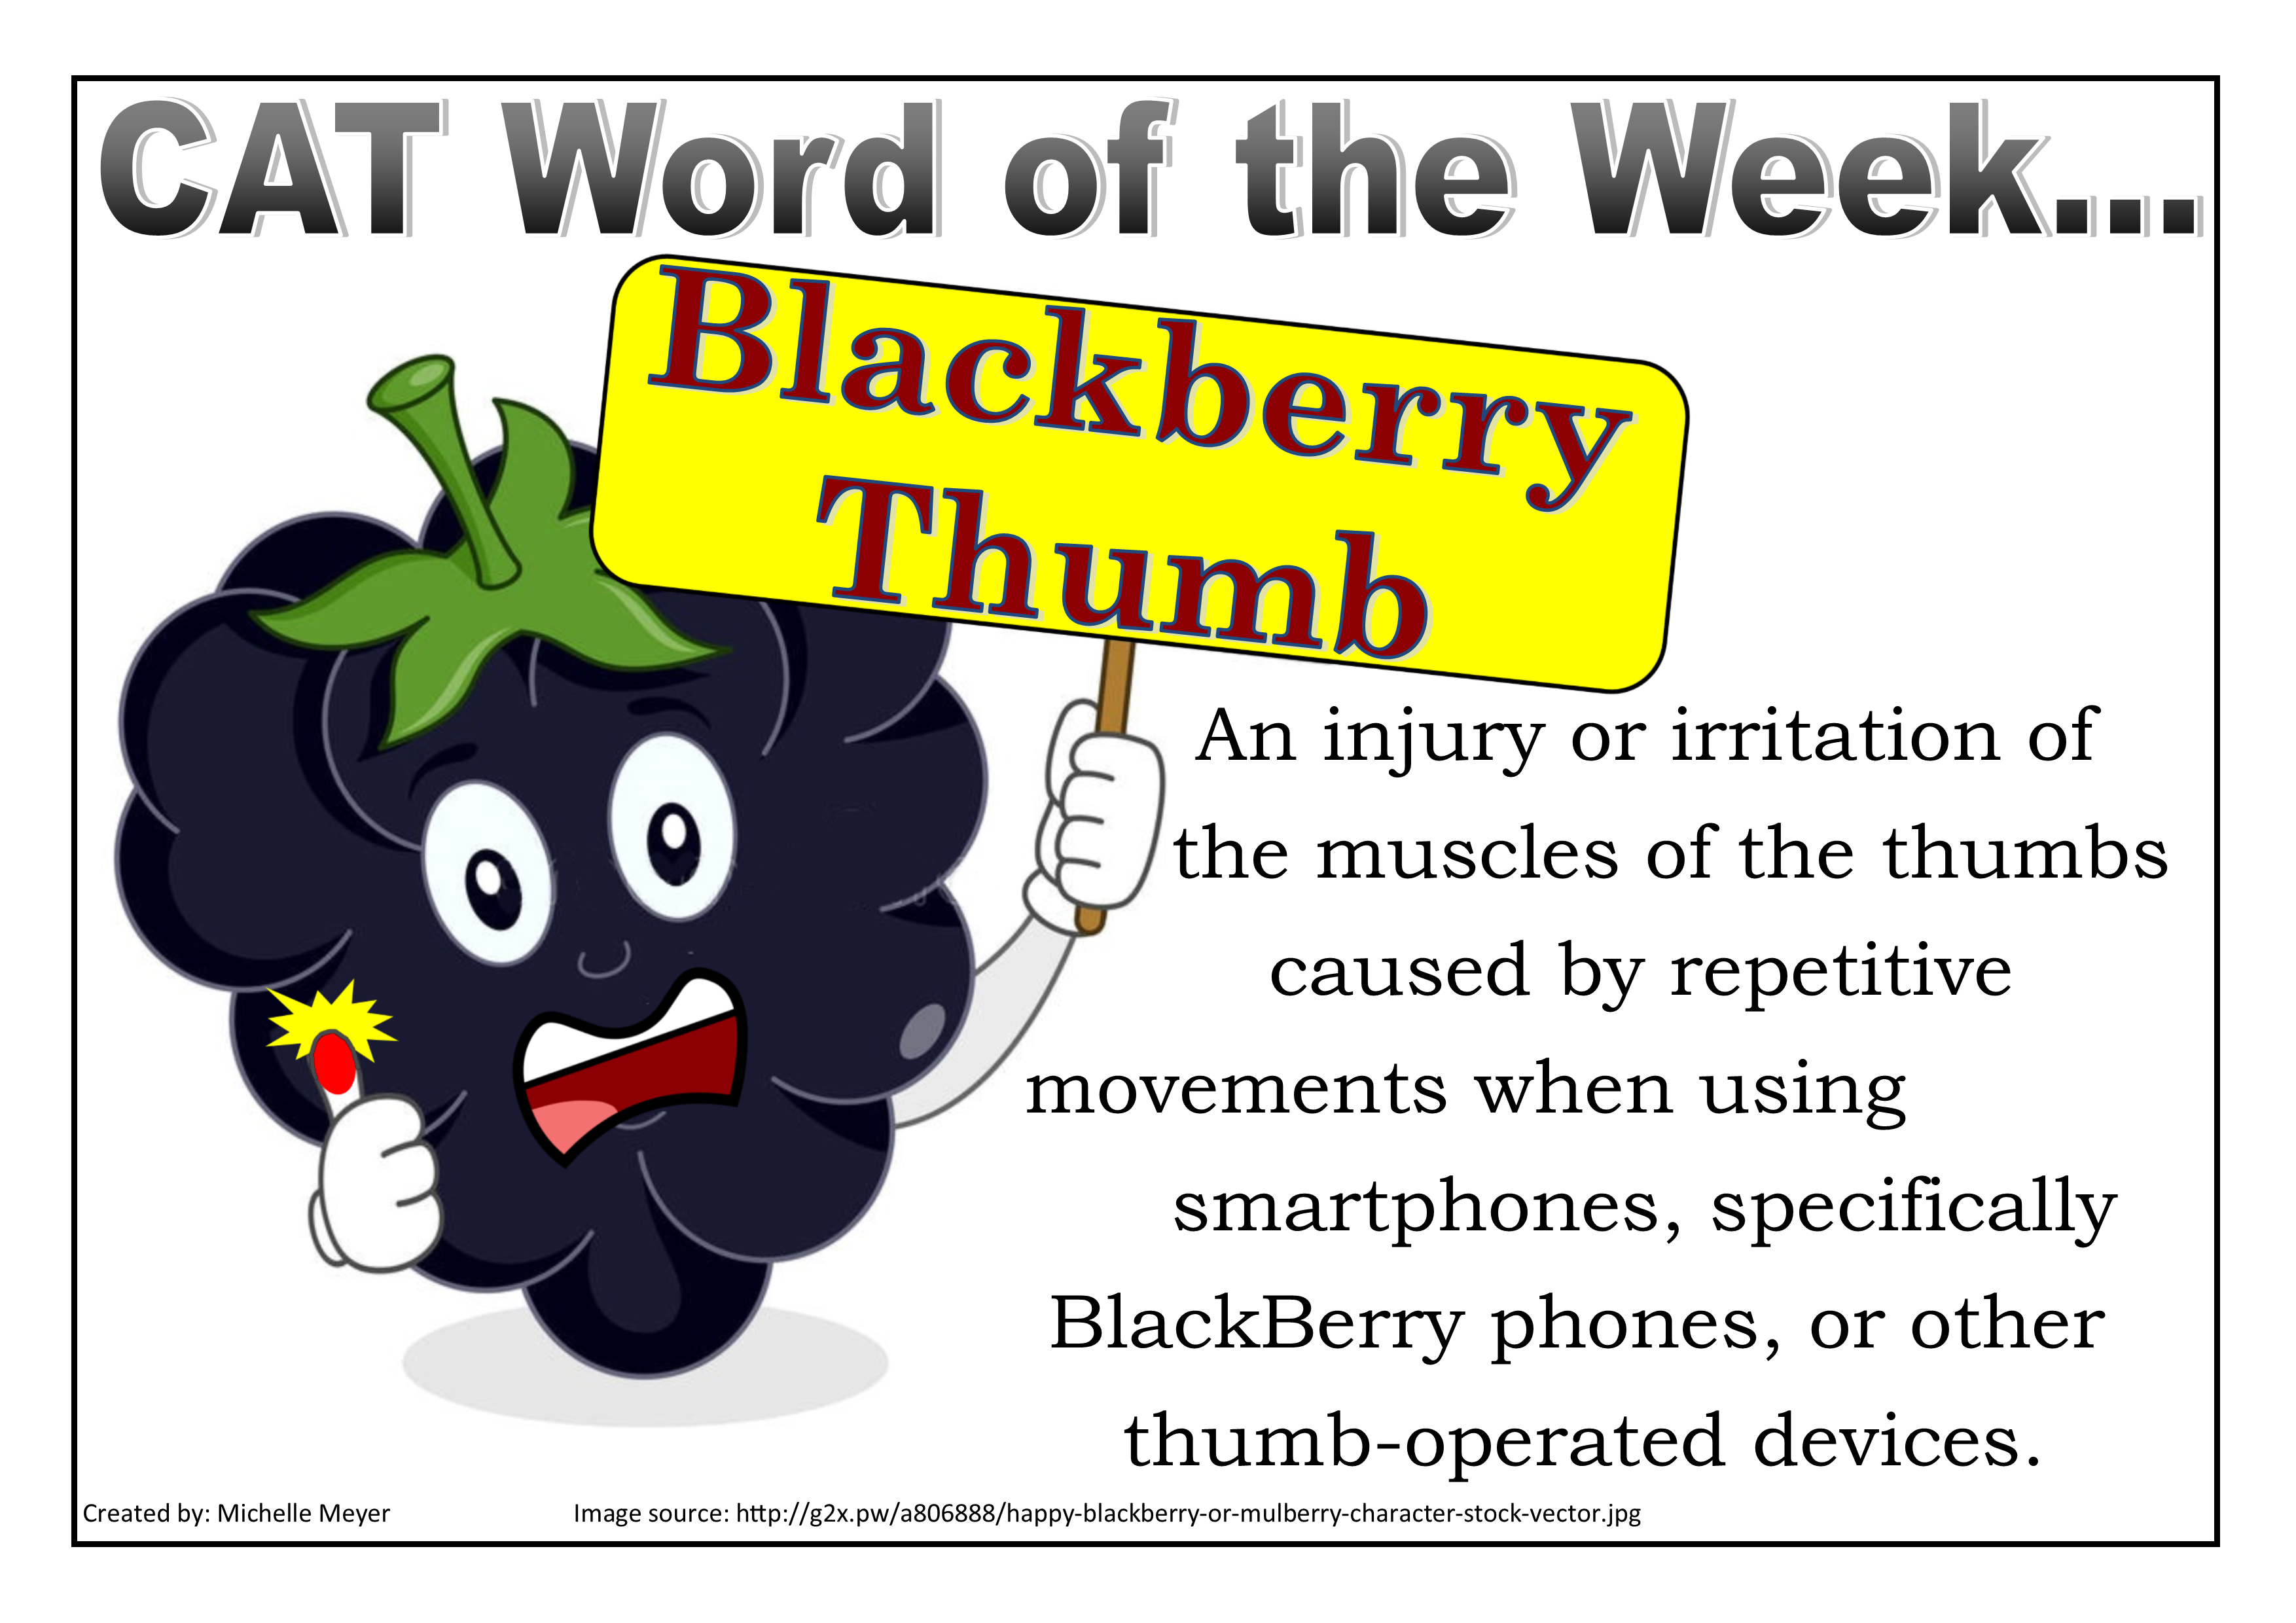 5 Blackberry Thumb